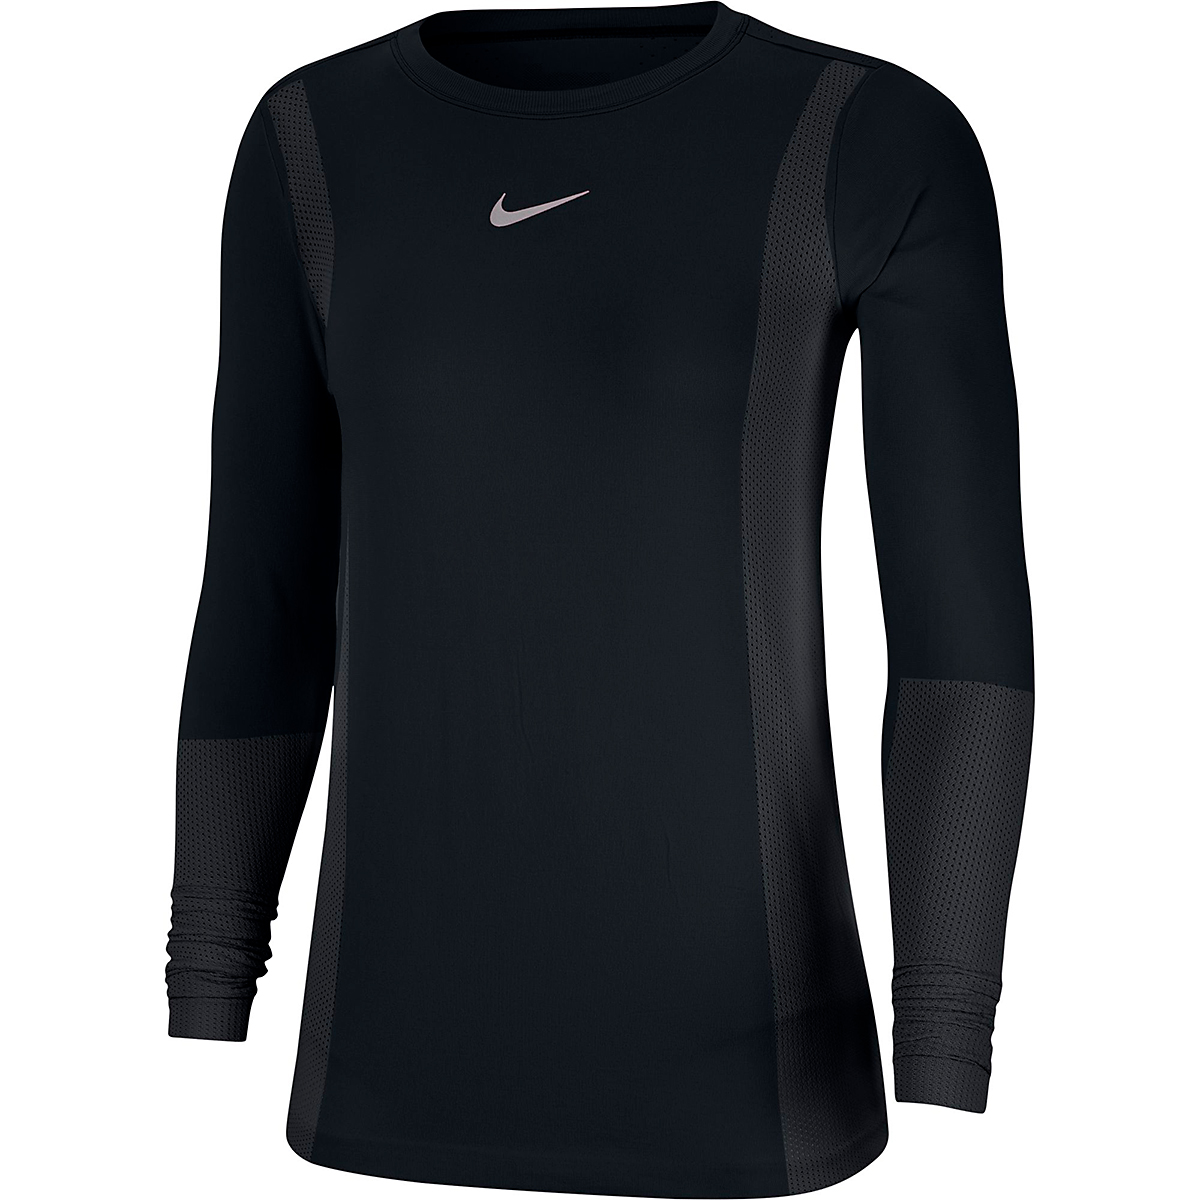 Women's Nike Infinite Running Top Long Sleeve - Color: Black - Size: XS, Black, large, image 3